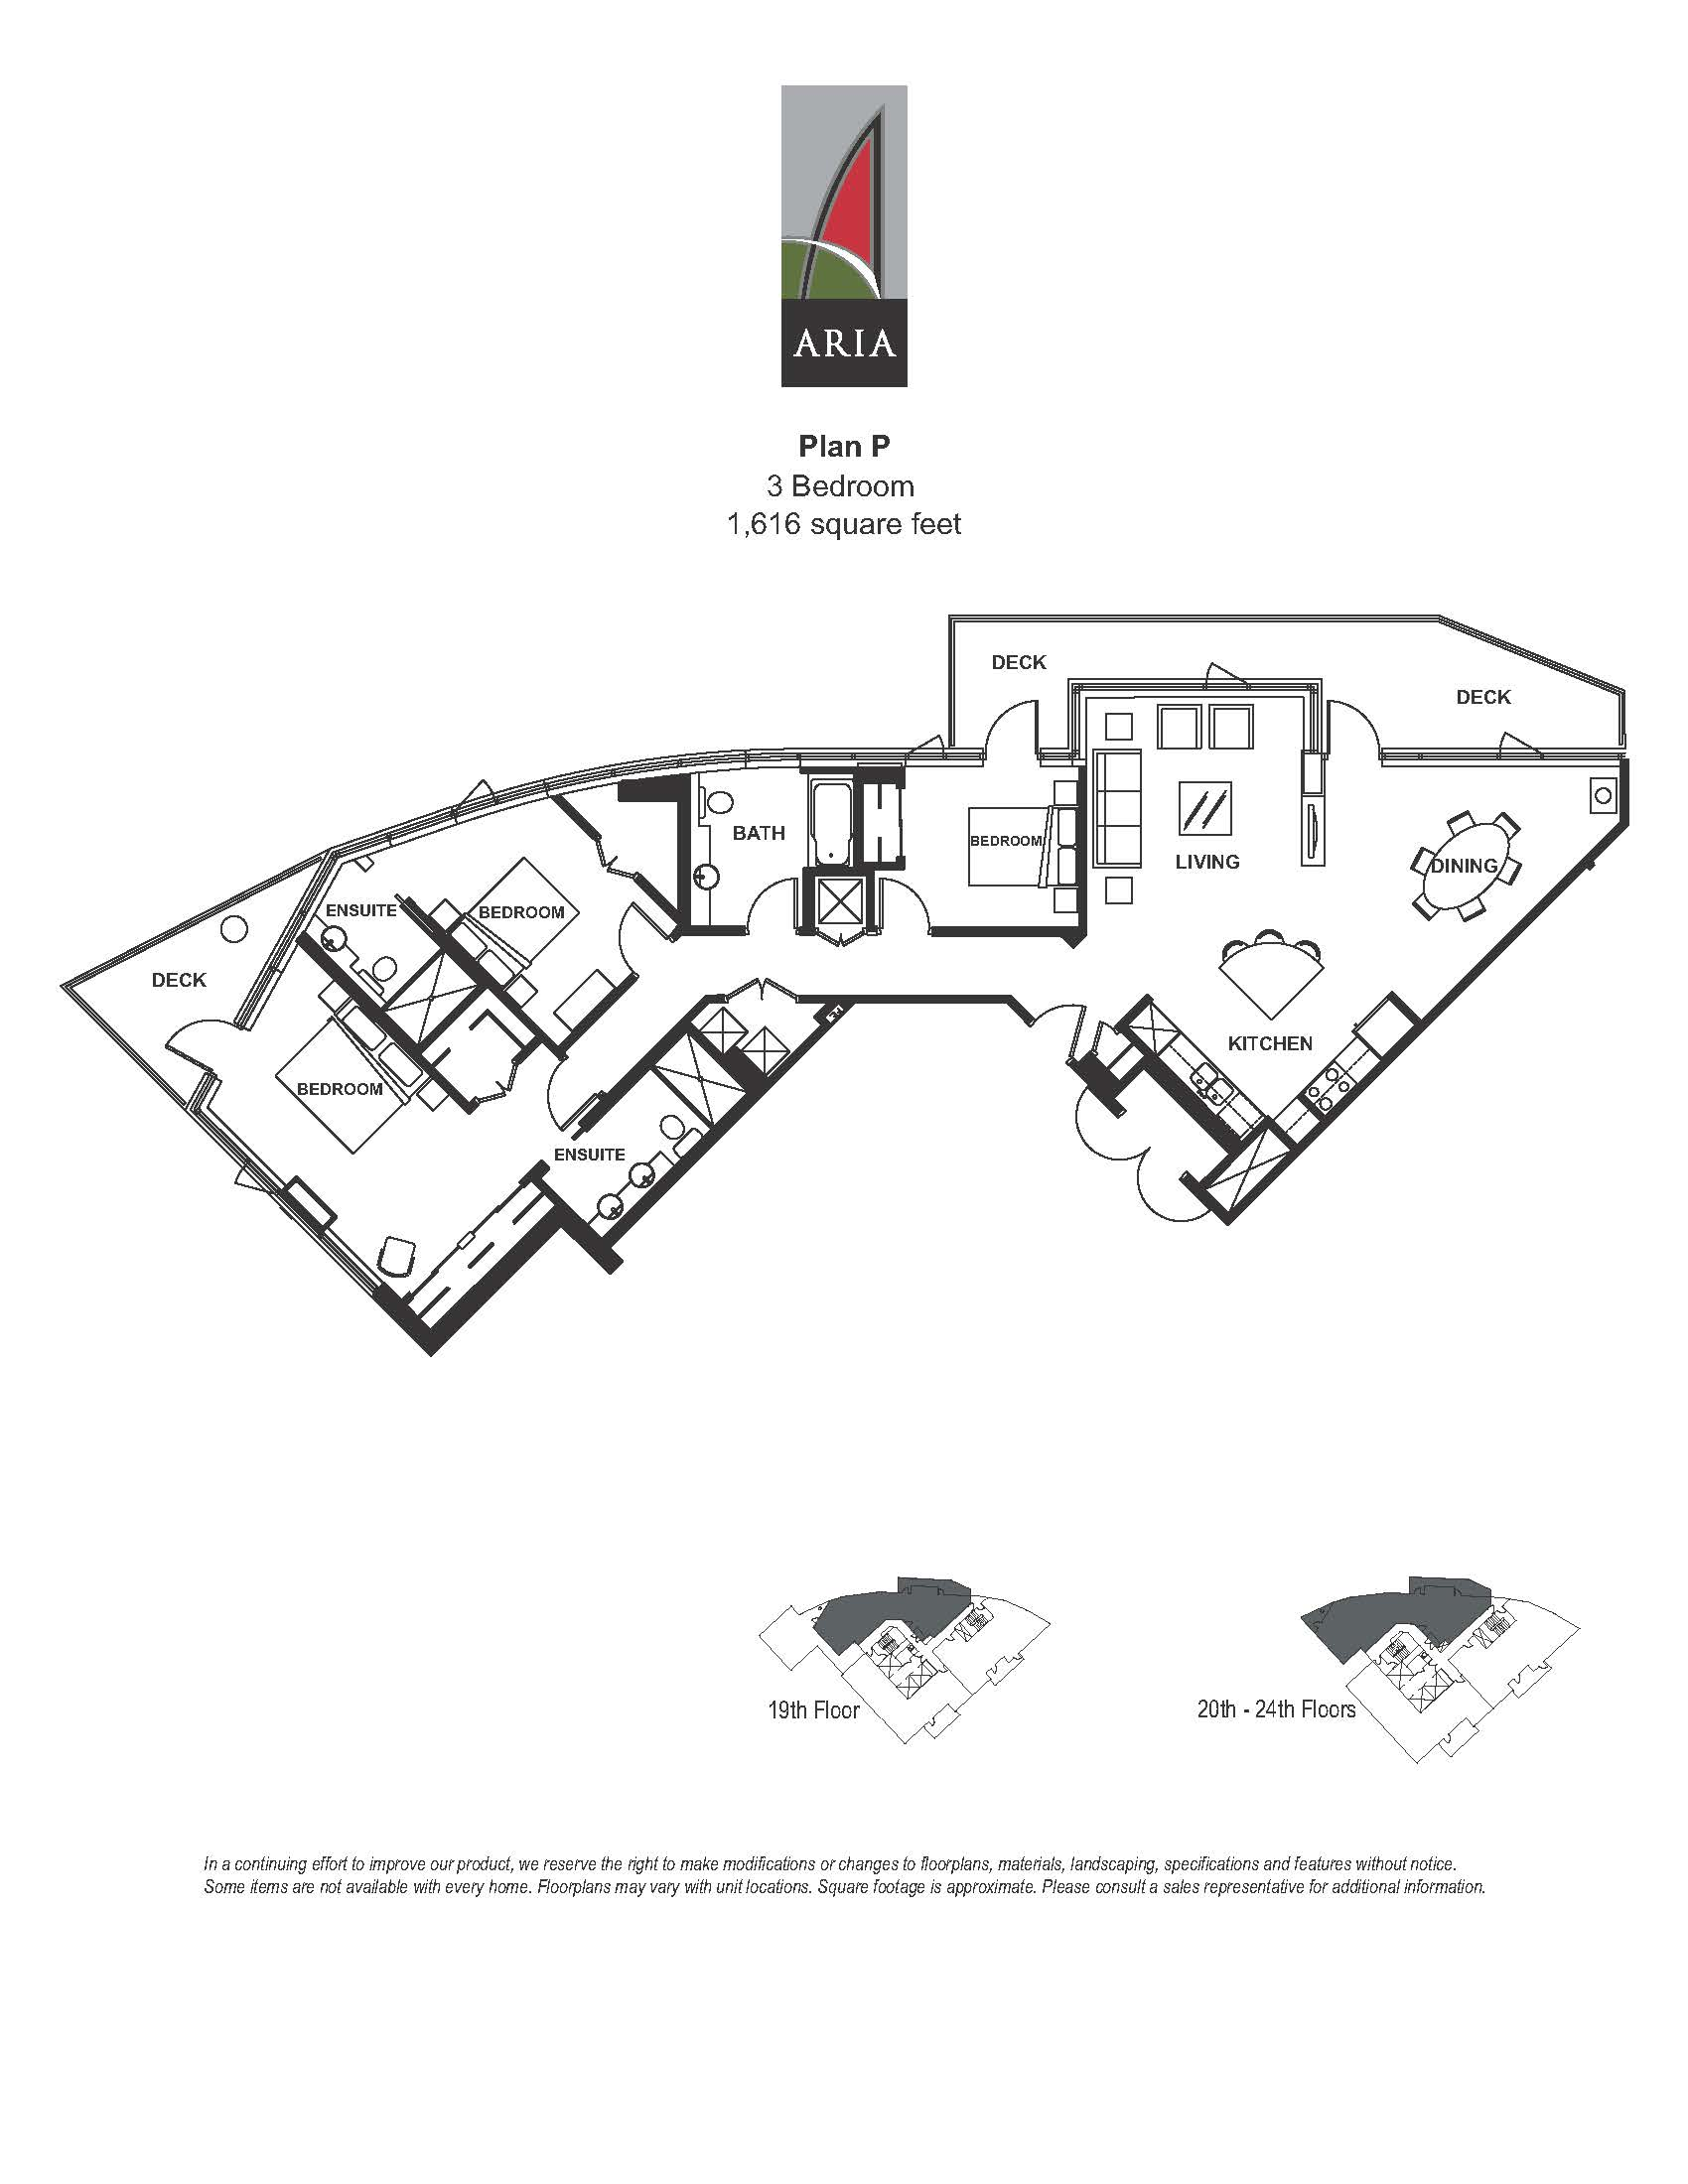 Aria 3 Bedroom – Plan P